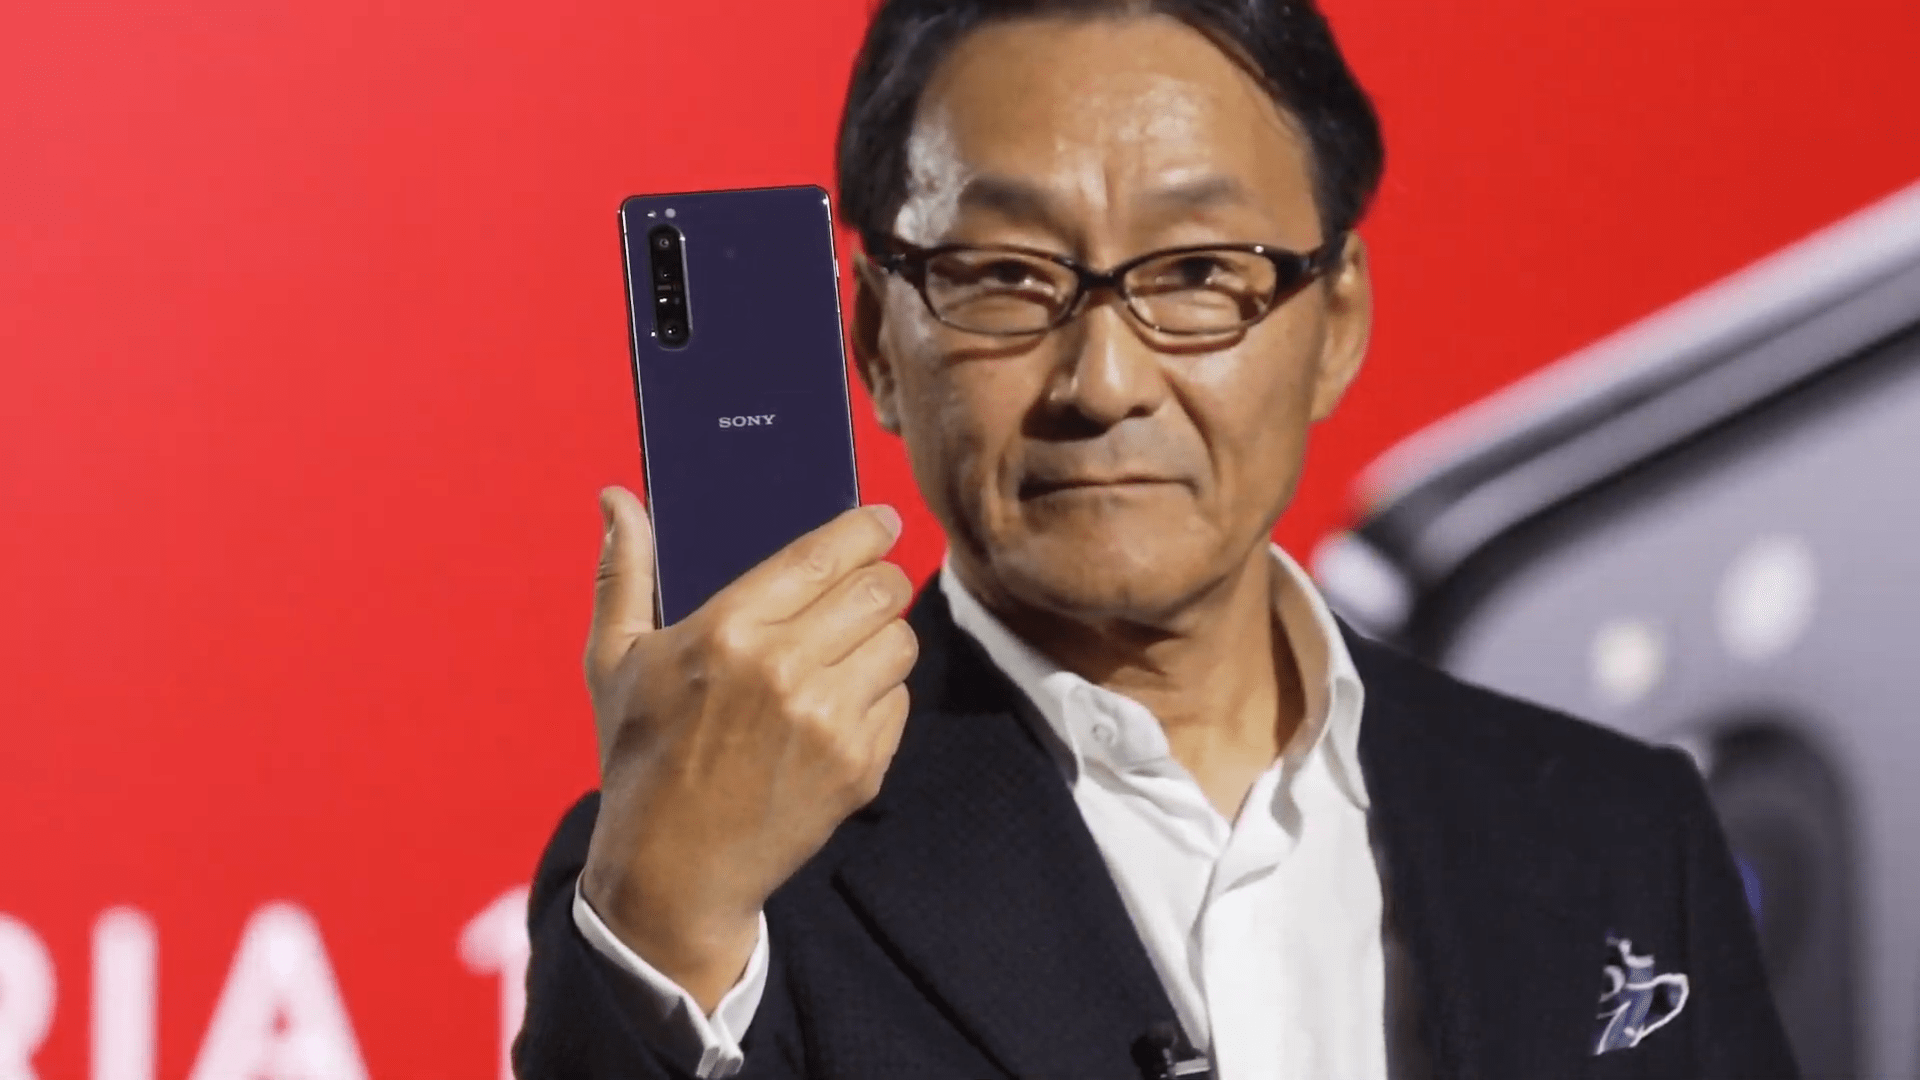 Presentation on the Sony Xperia 1 mark II at MWC 2020, is broadcast live